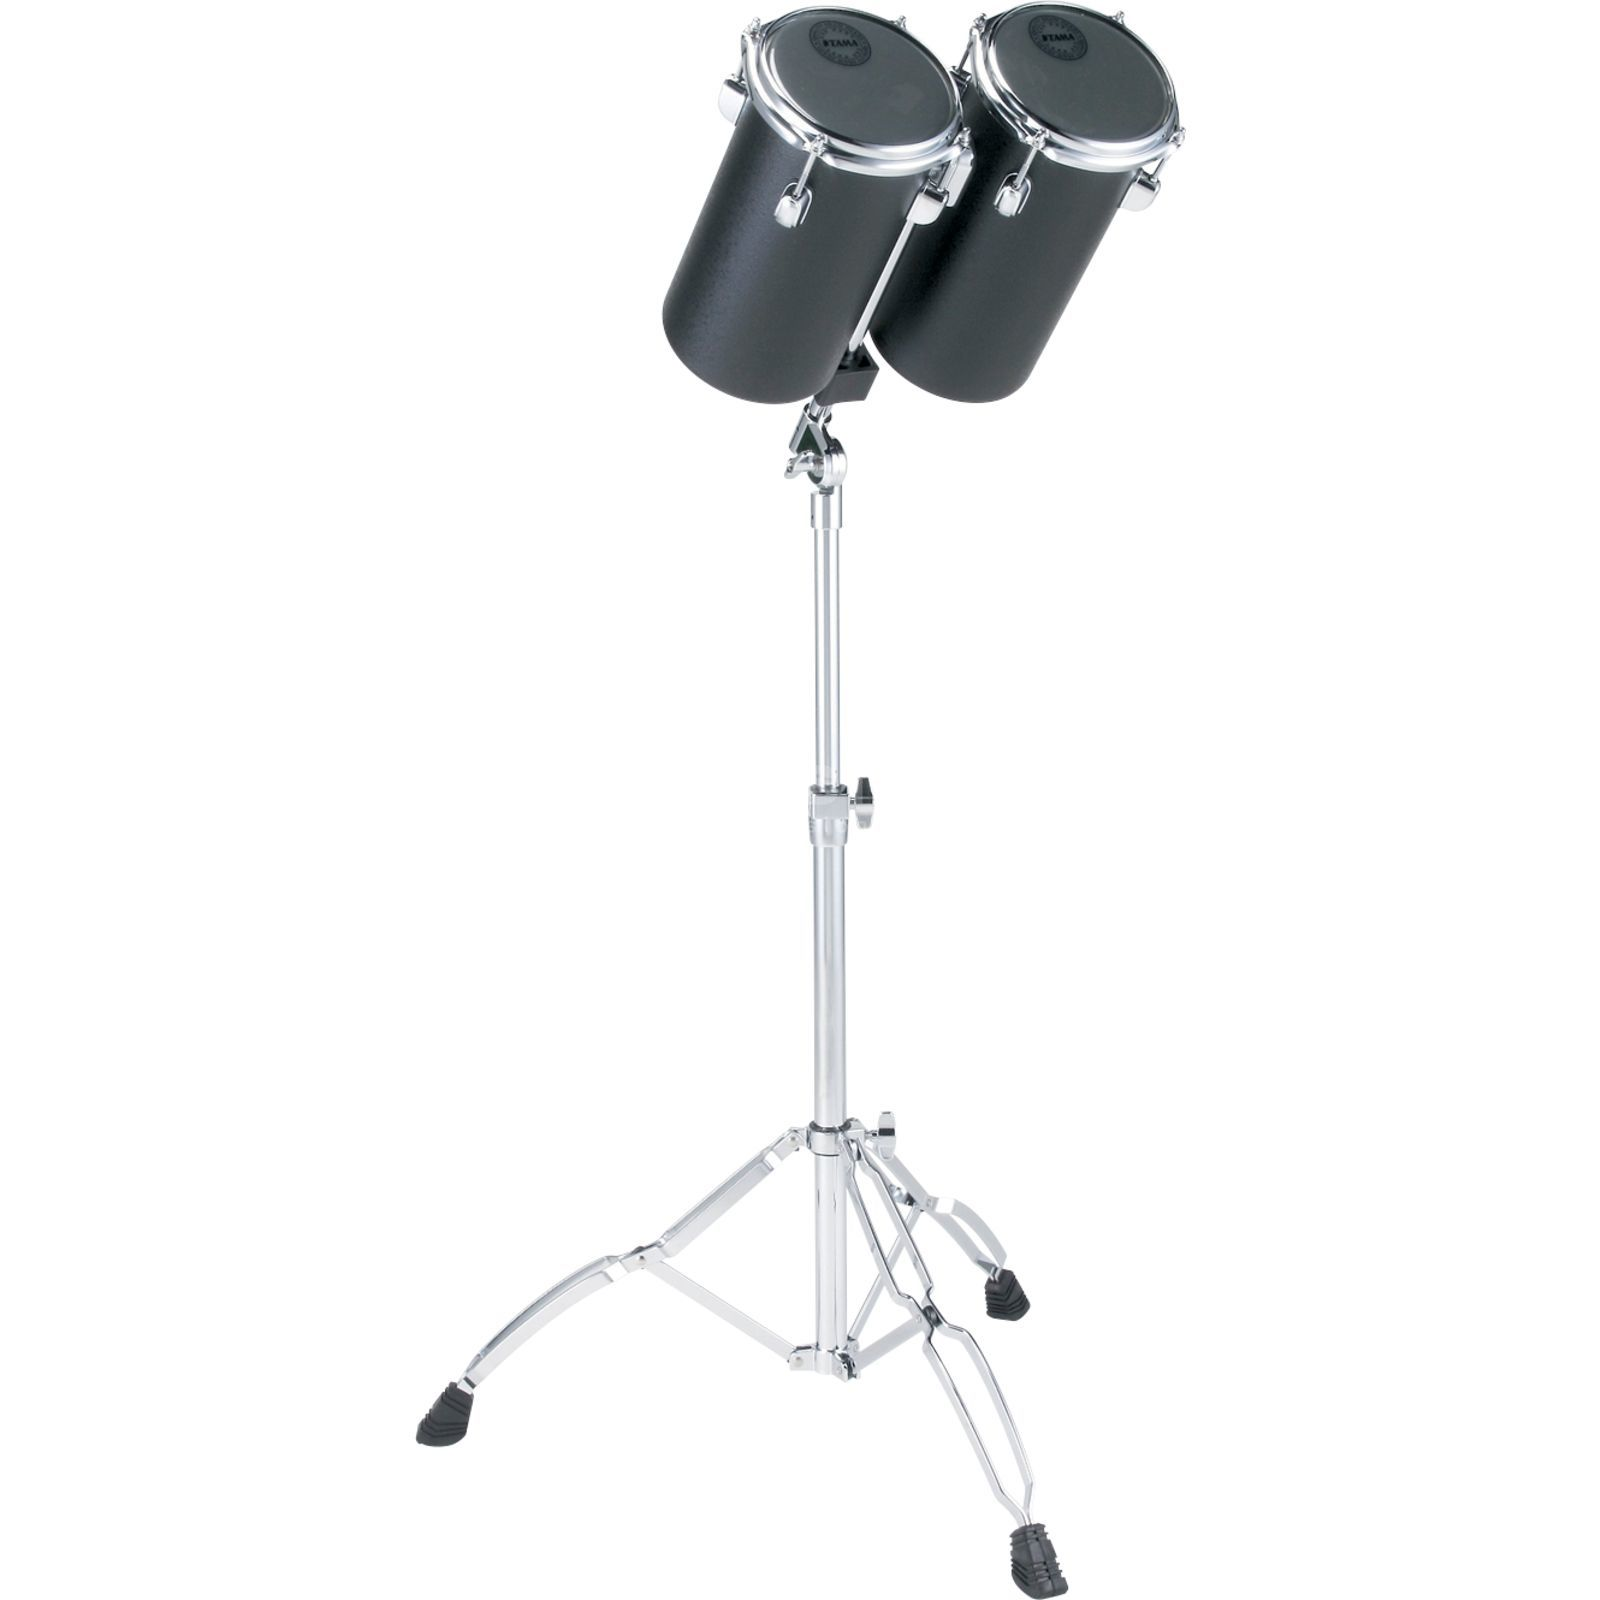 Tama 7850N2H Octobans High Pitch - Set of 2 with Stand Produktbillede